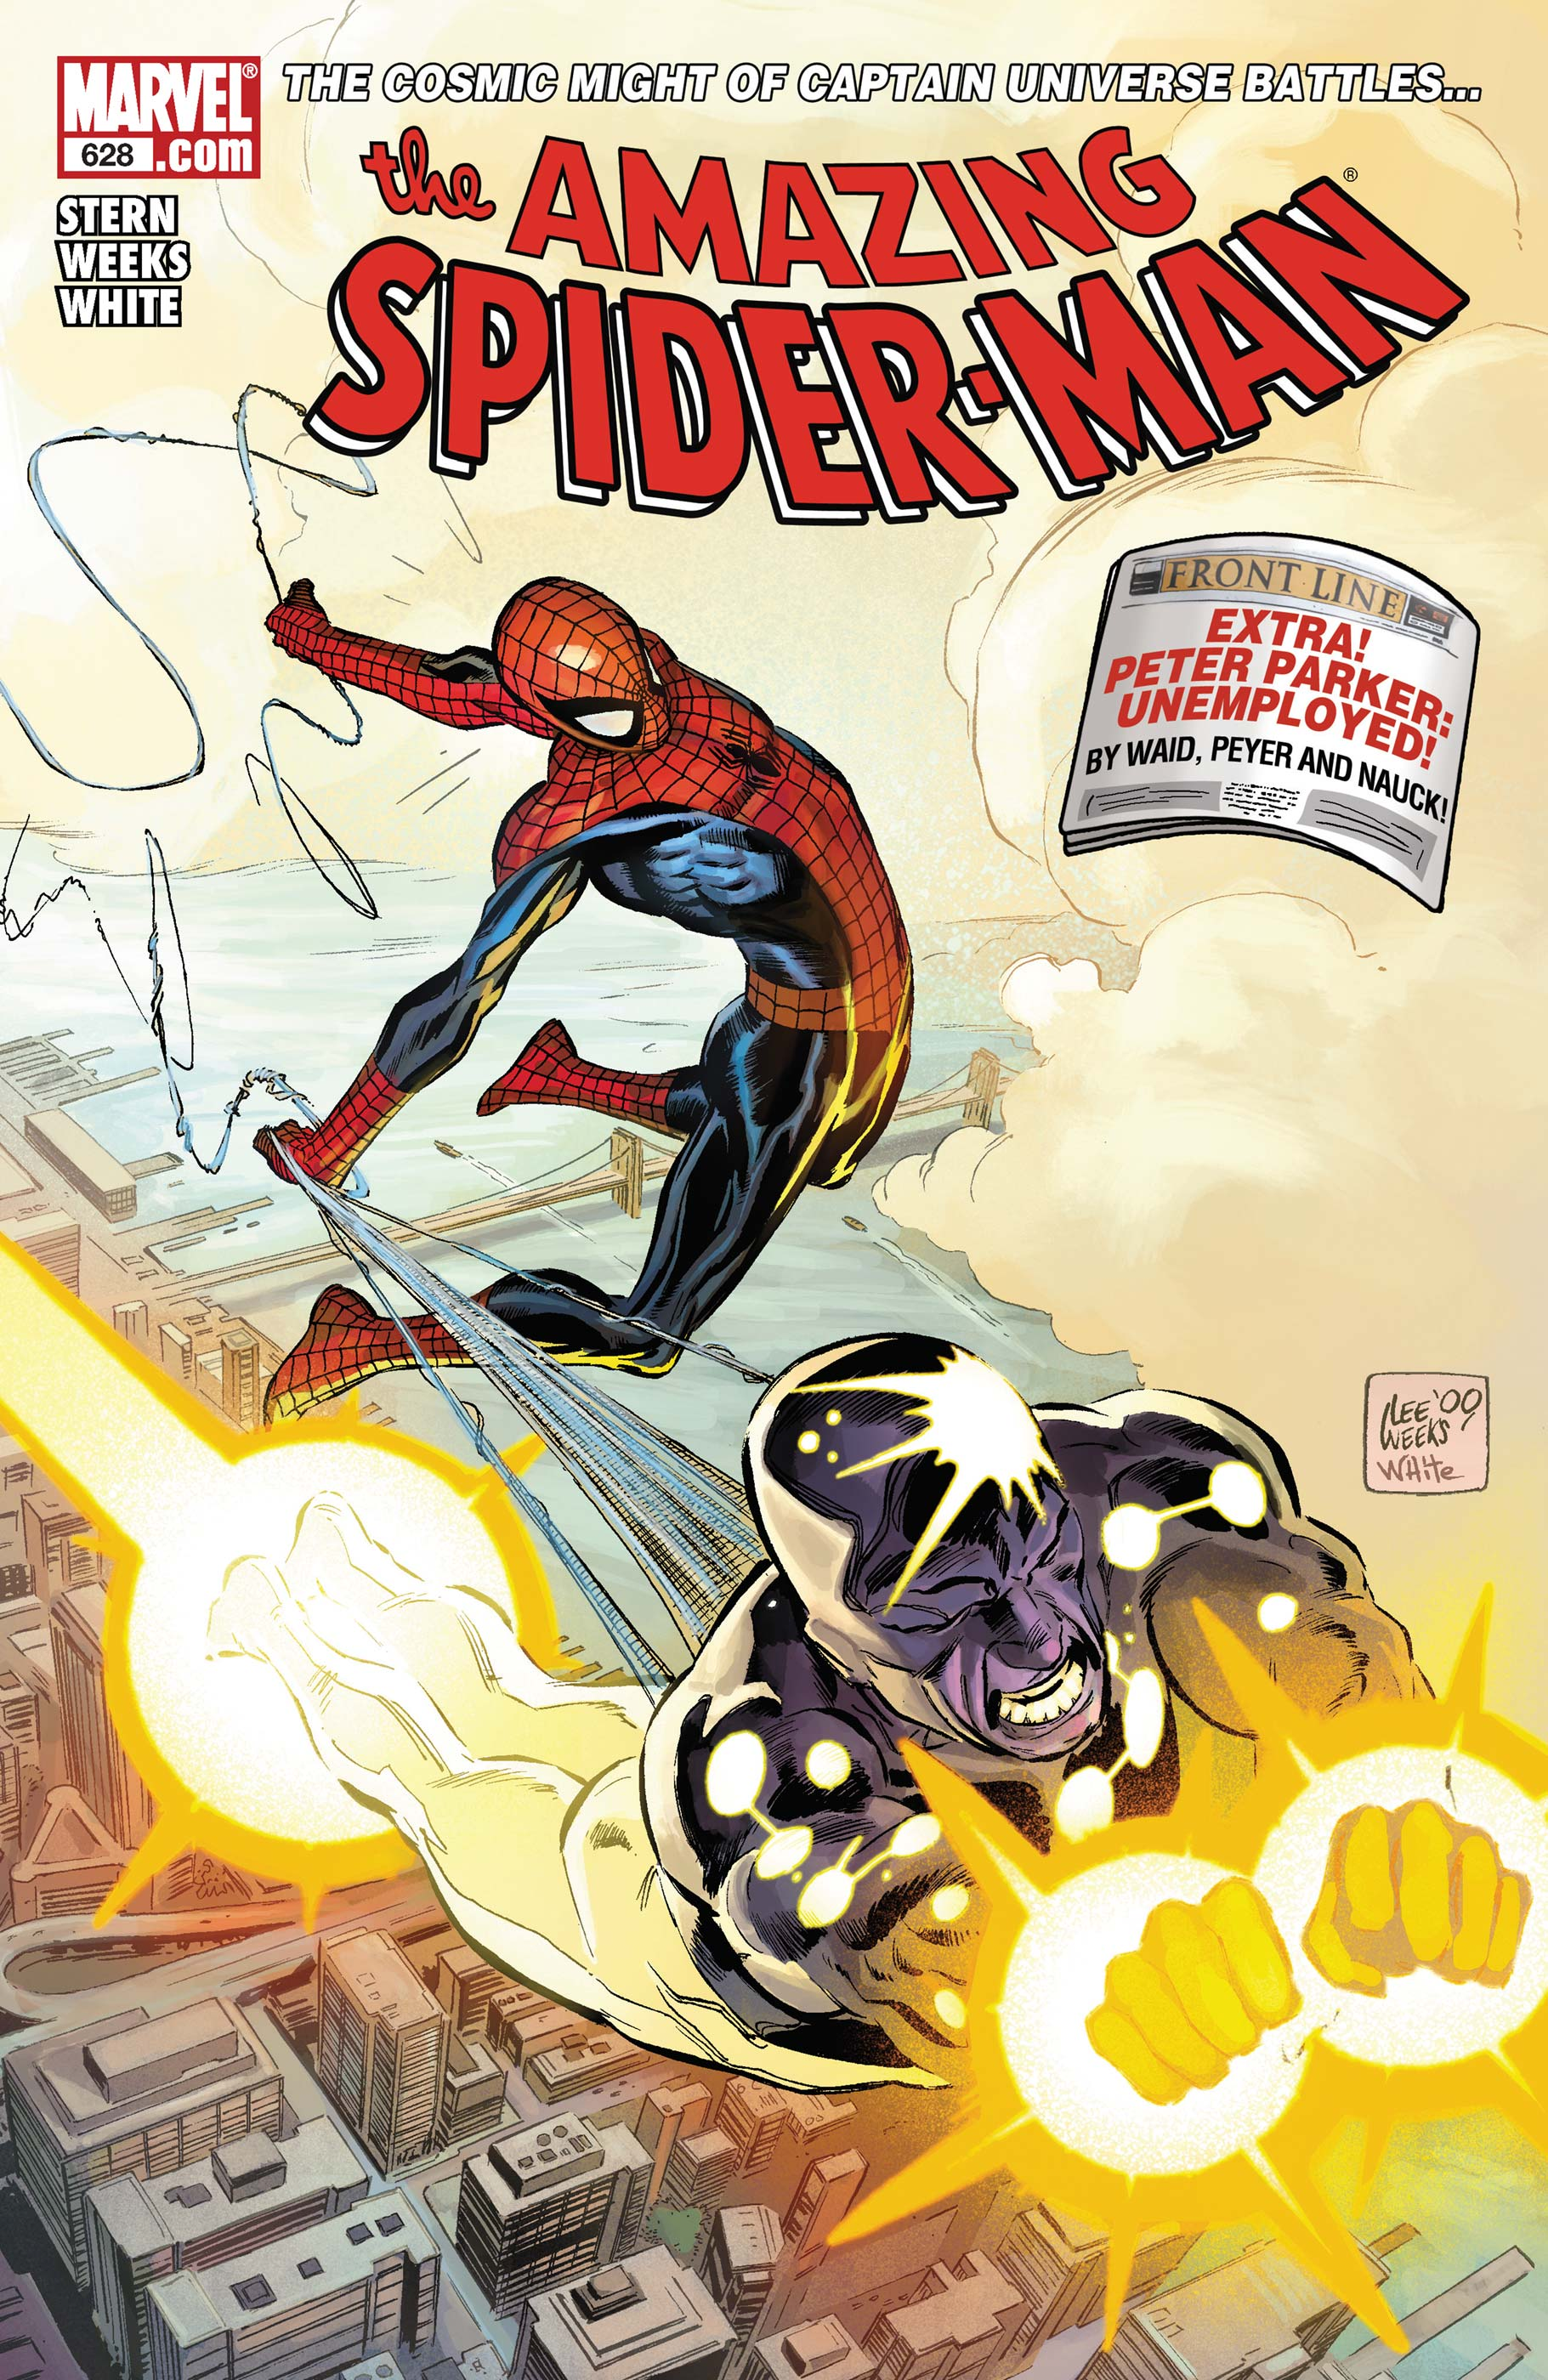 Amazing Spider-Man (1999) #628